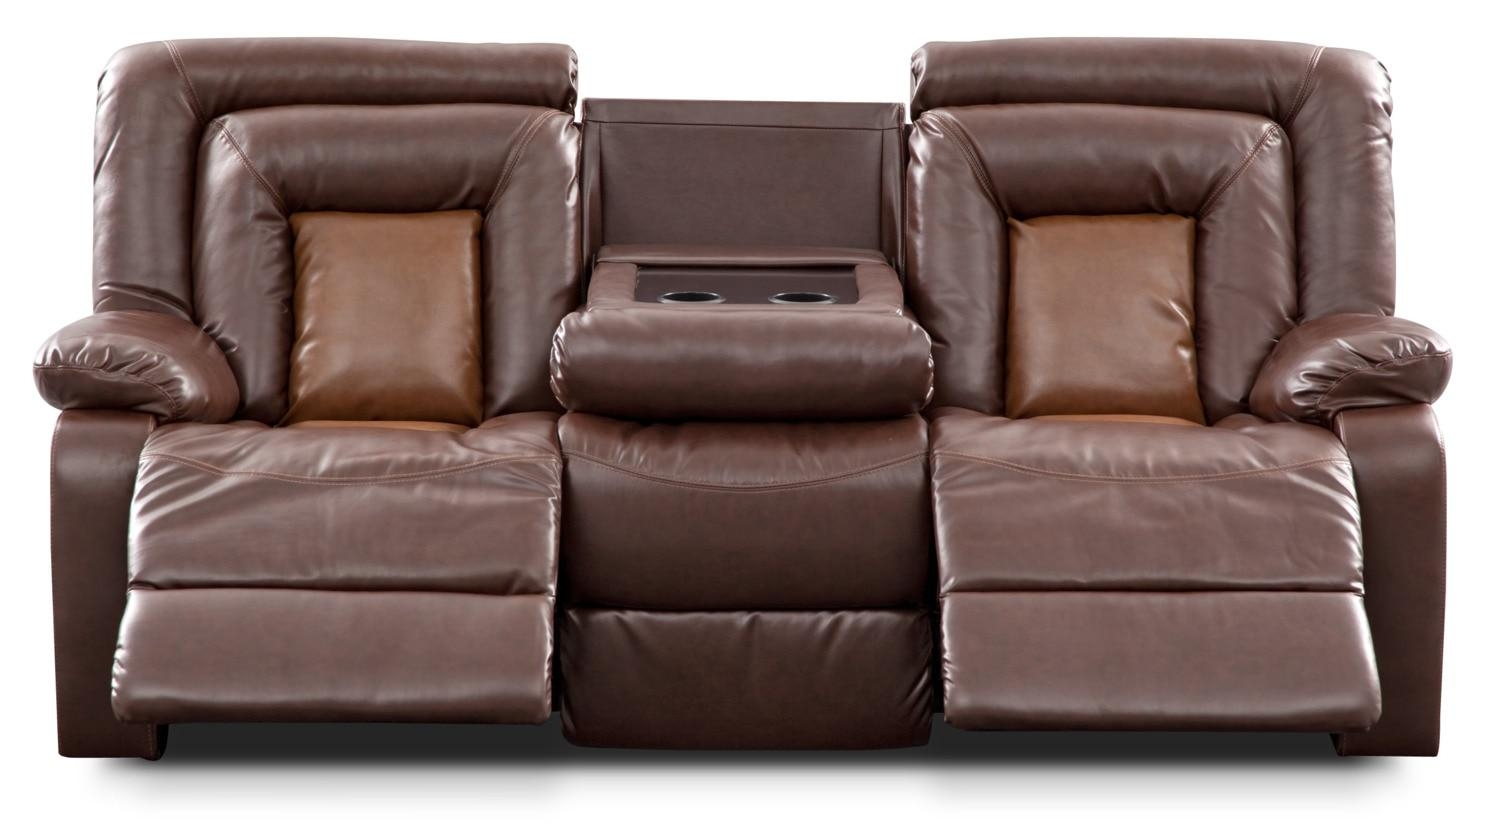 Sofas Center : Magnificent Recliningfa With Console Images Concept In Sofas With Console (View 9 of 20)